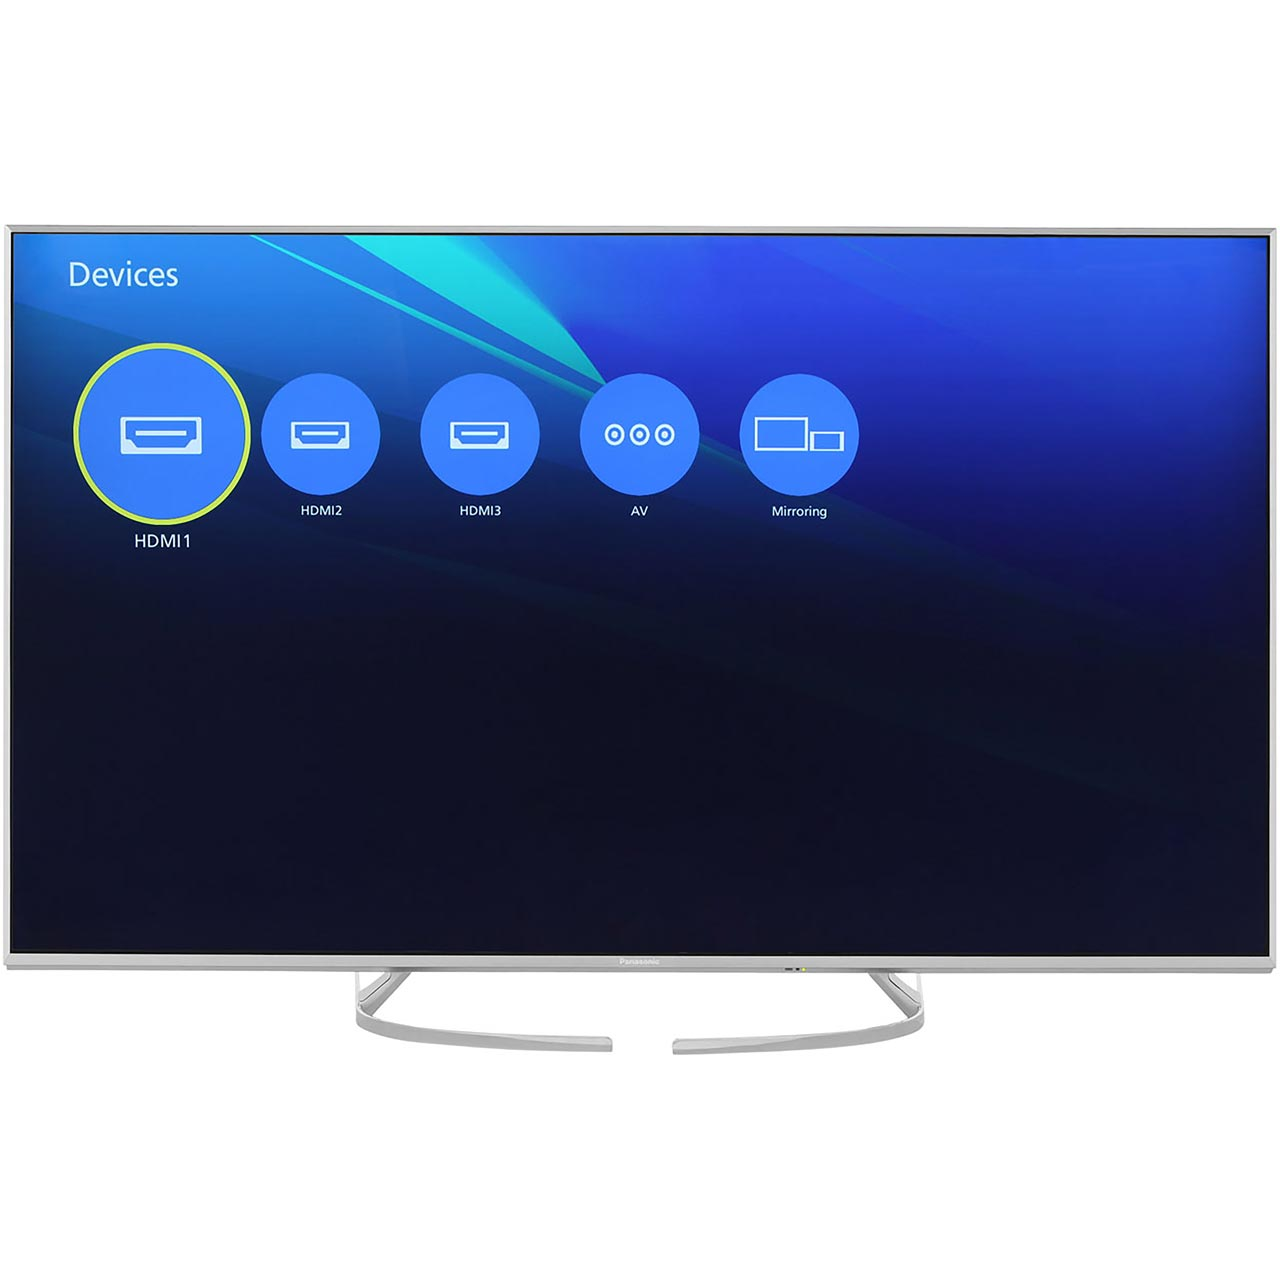 Tv 65 Inch Panasonic Tx 65ex700b Ex700 65 Inch Smart Led Tv 4k Ultra